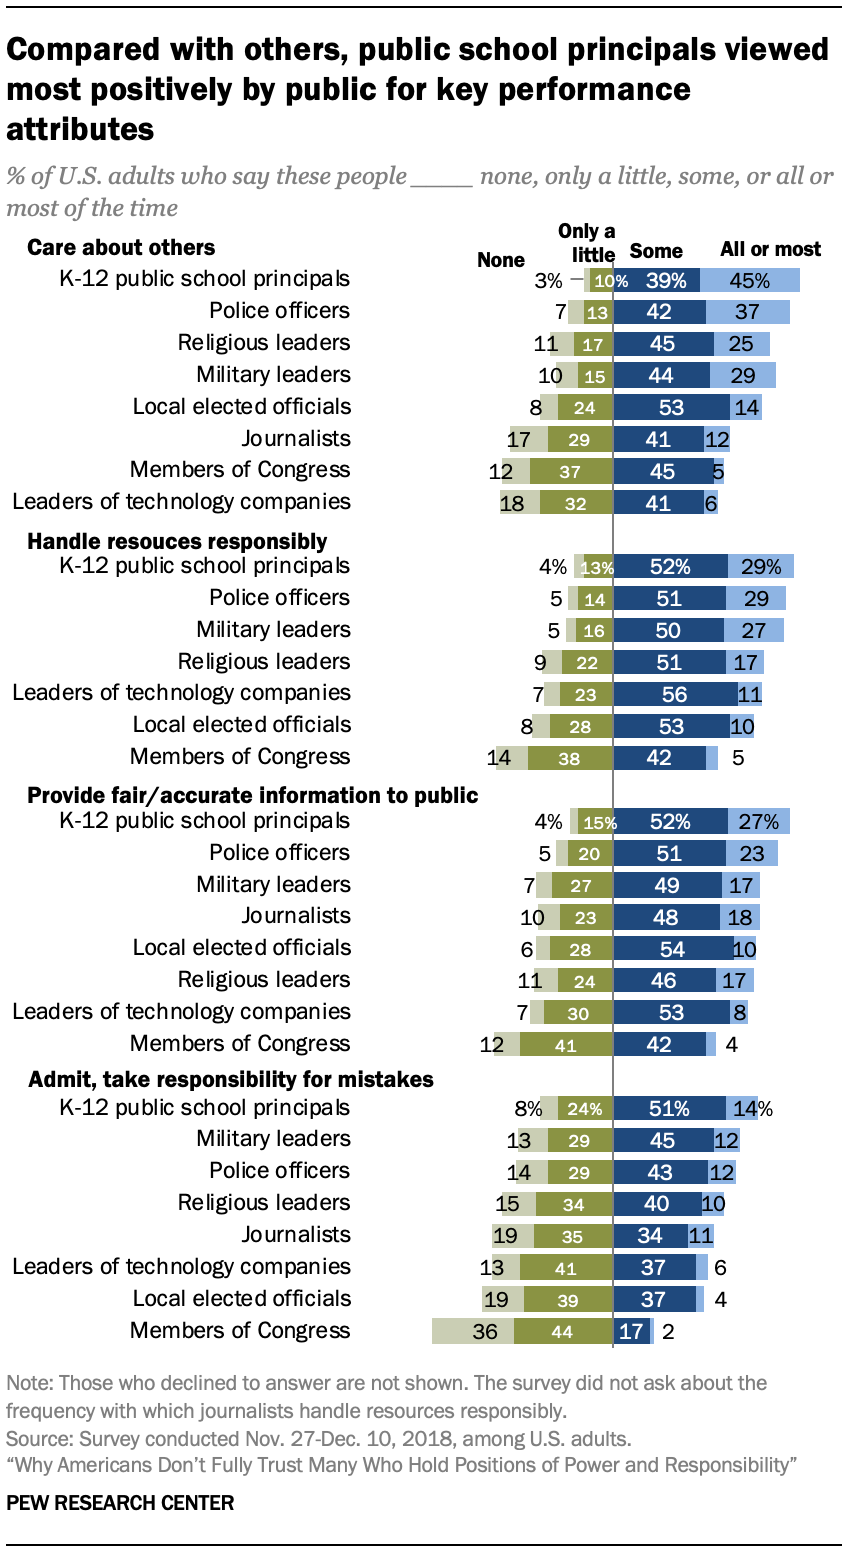 Compared with others, public school principals viewed most positively by public for key performance attributes